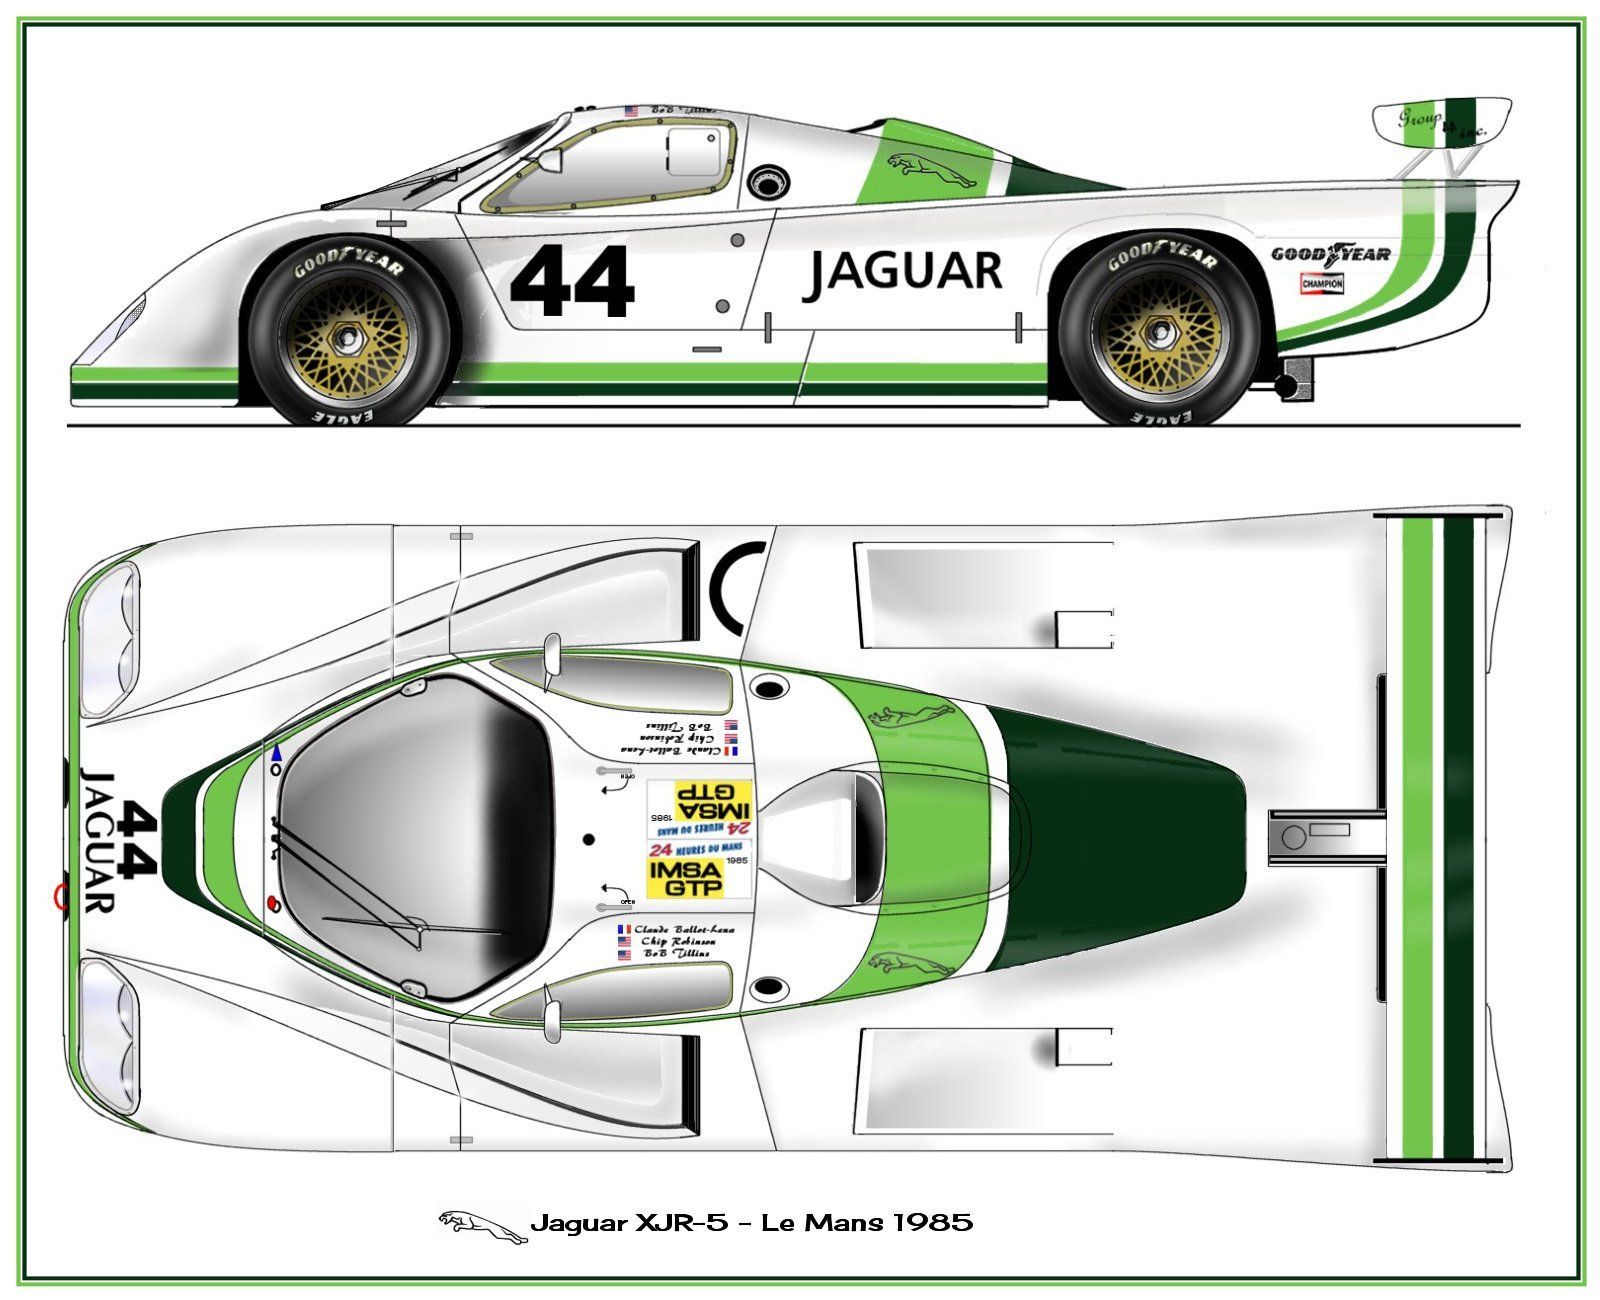 jaguar xjr 5 1985 le mans racing cars in profile pinterest carrera coches de carreras y. Black Bedroom Furniture Sets. Home Design Ideas